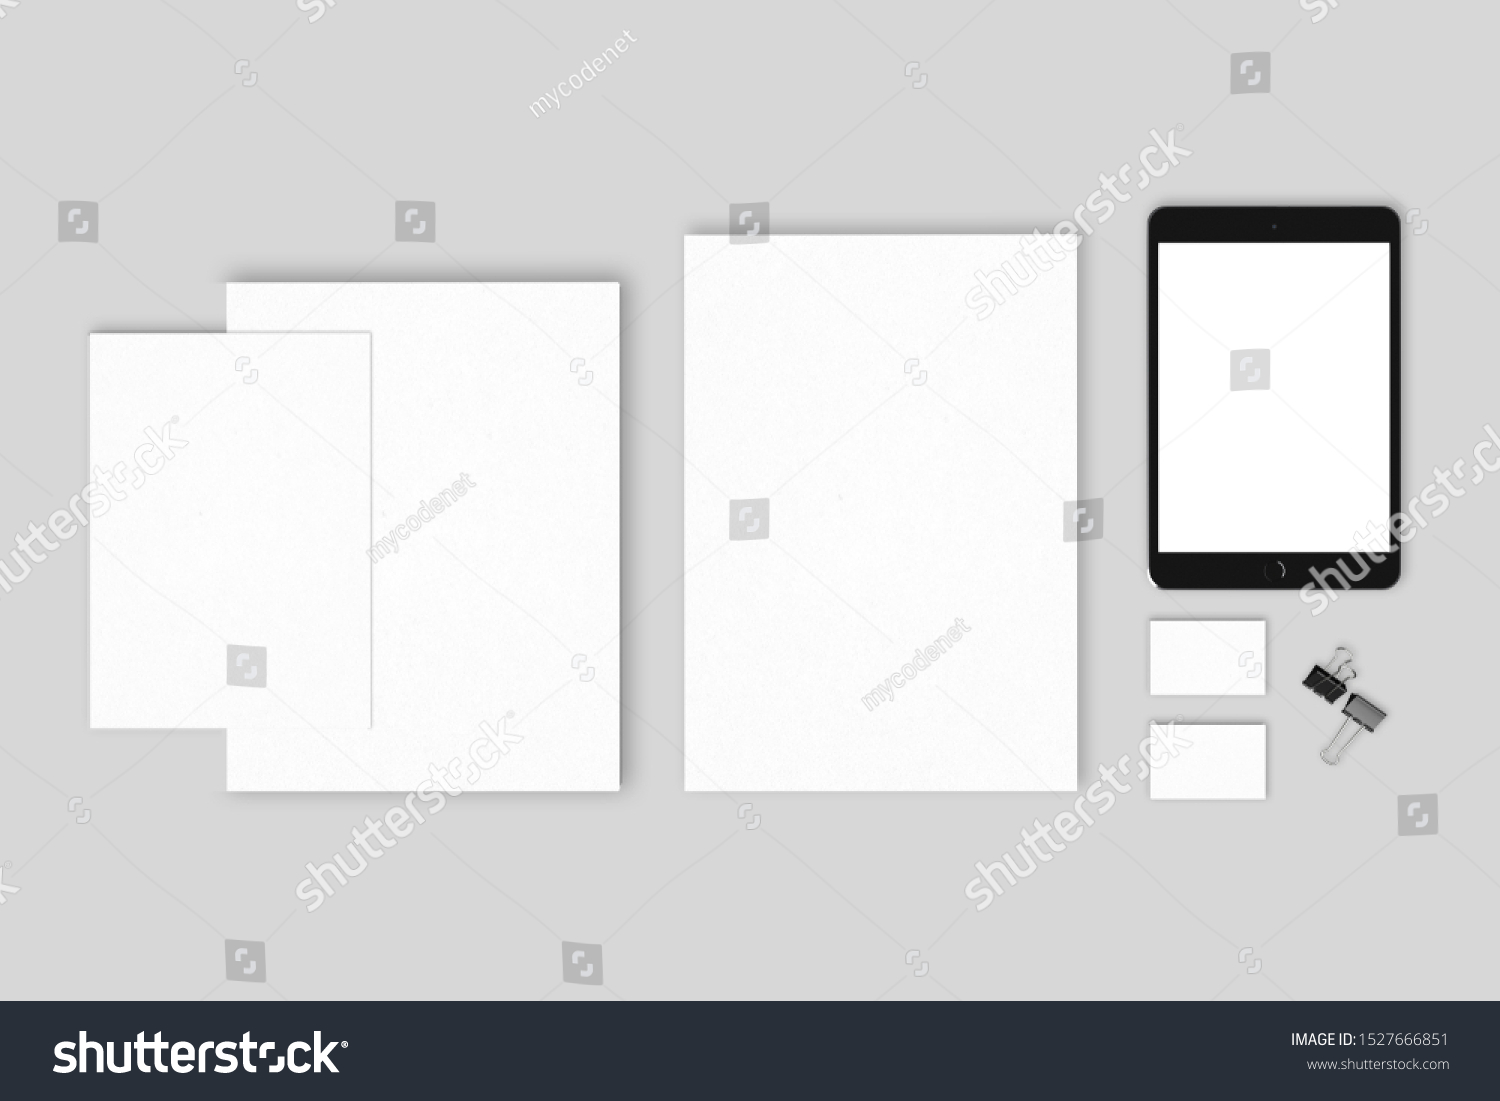 Premium blanks corporate mockup templates to show your design  #1527666851